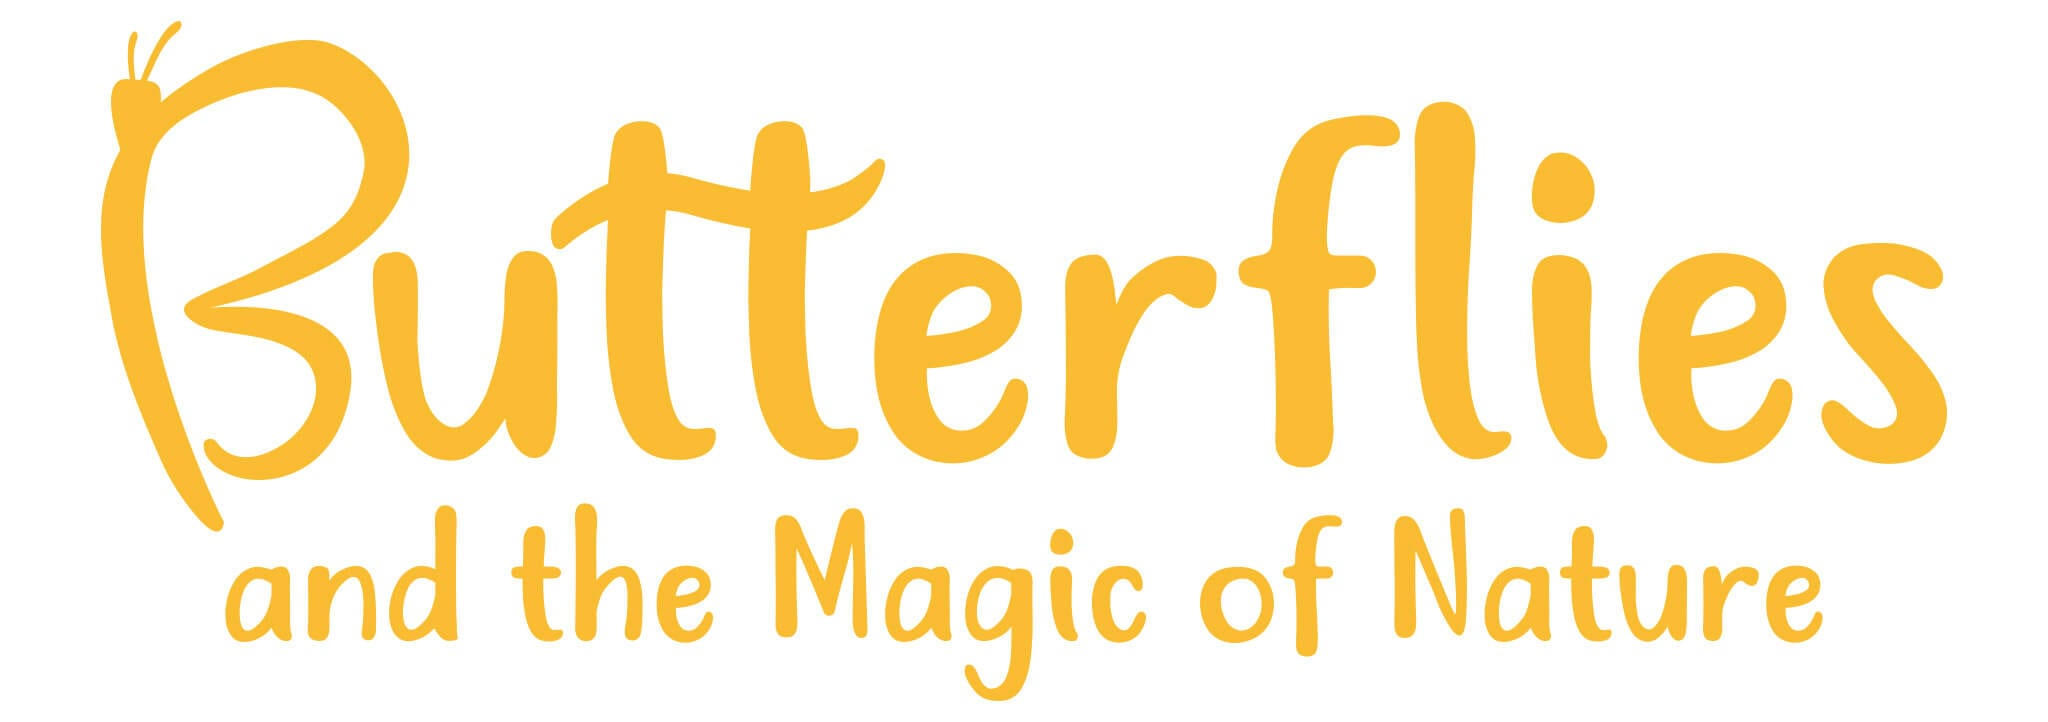 Butterflies and the Magic of Nature logo